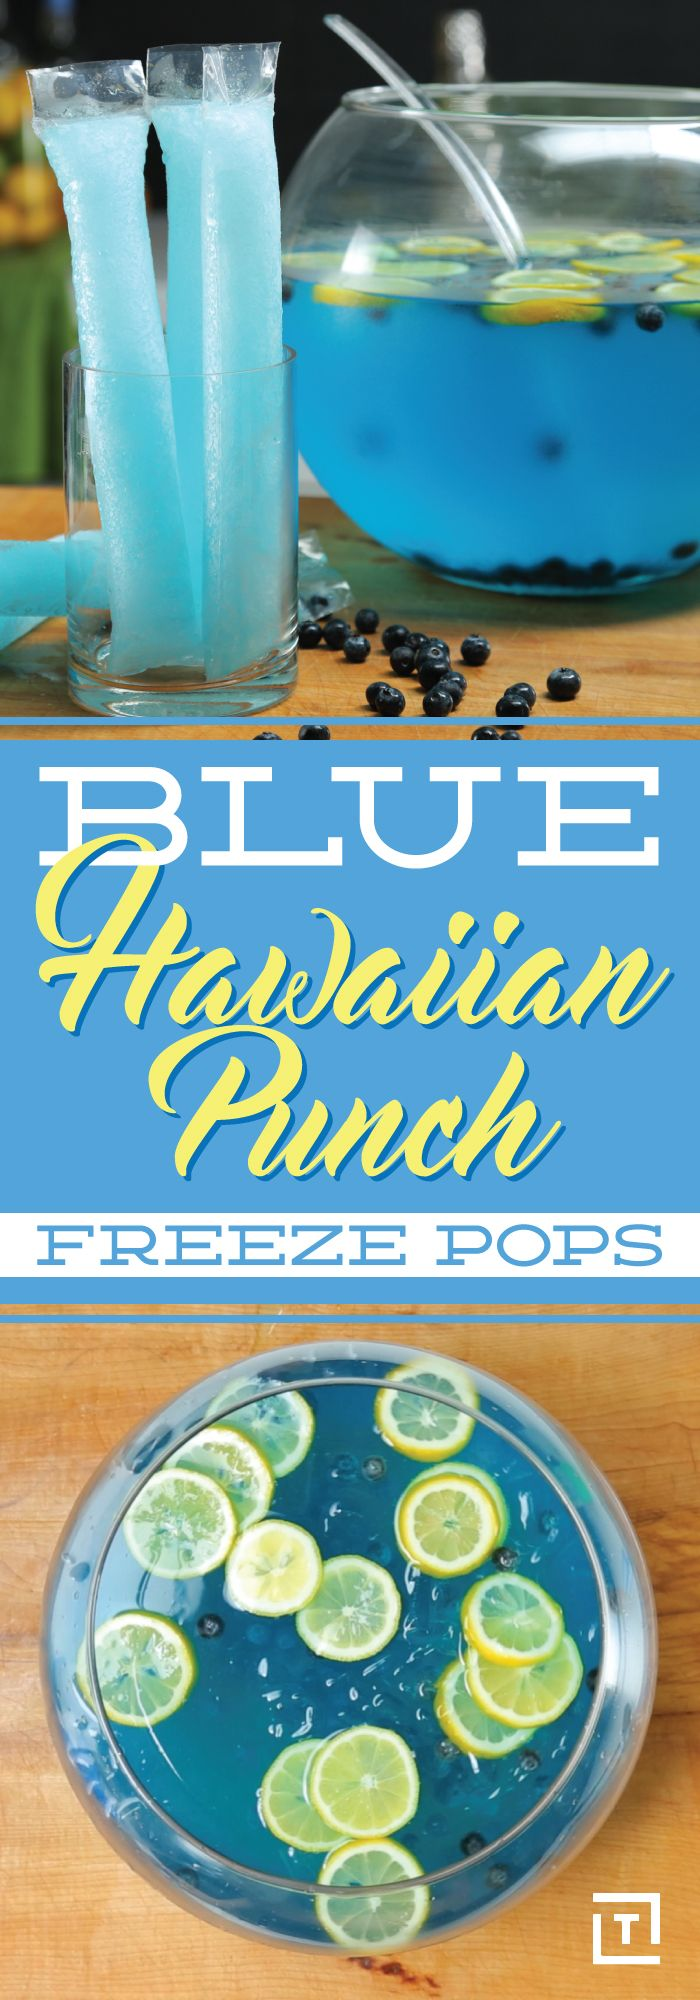 We've taken it upon ourselves to make your childhood freeze pops bigger and better this summer. Made with blue Hawaiian Punch, rum, lemon-lime soda, and blueberries, these blue freeze pops are waiting to be fought over, just like old times.